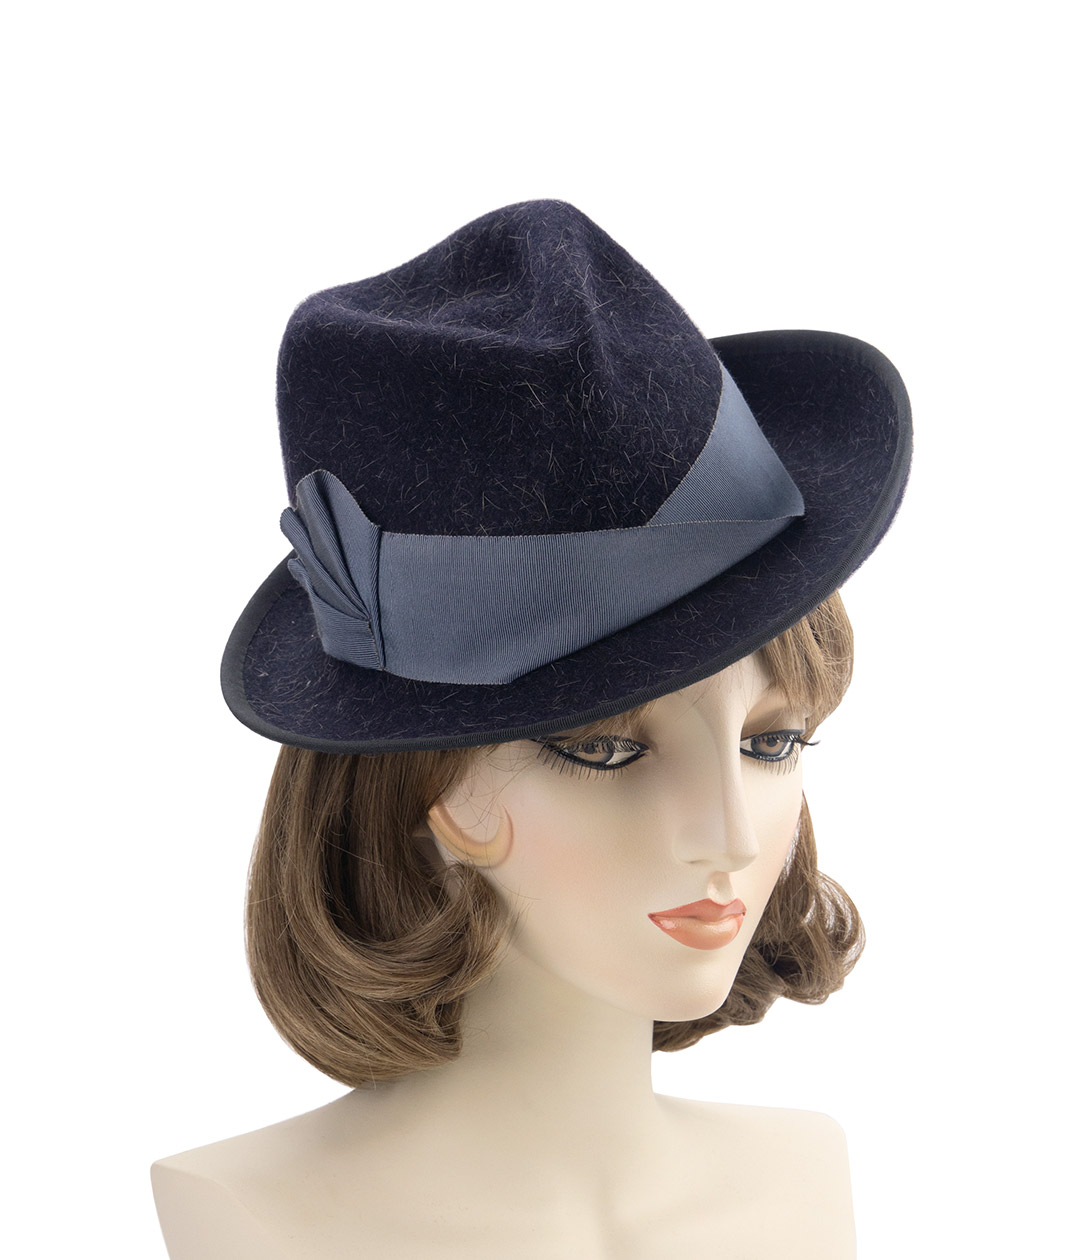 Perching black tilt fedora. Vintage-style hat on a mannequin head.